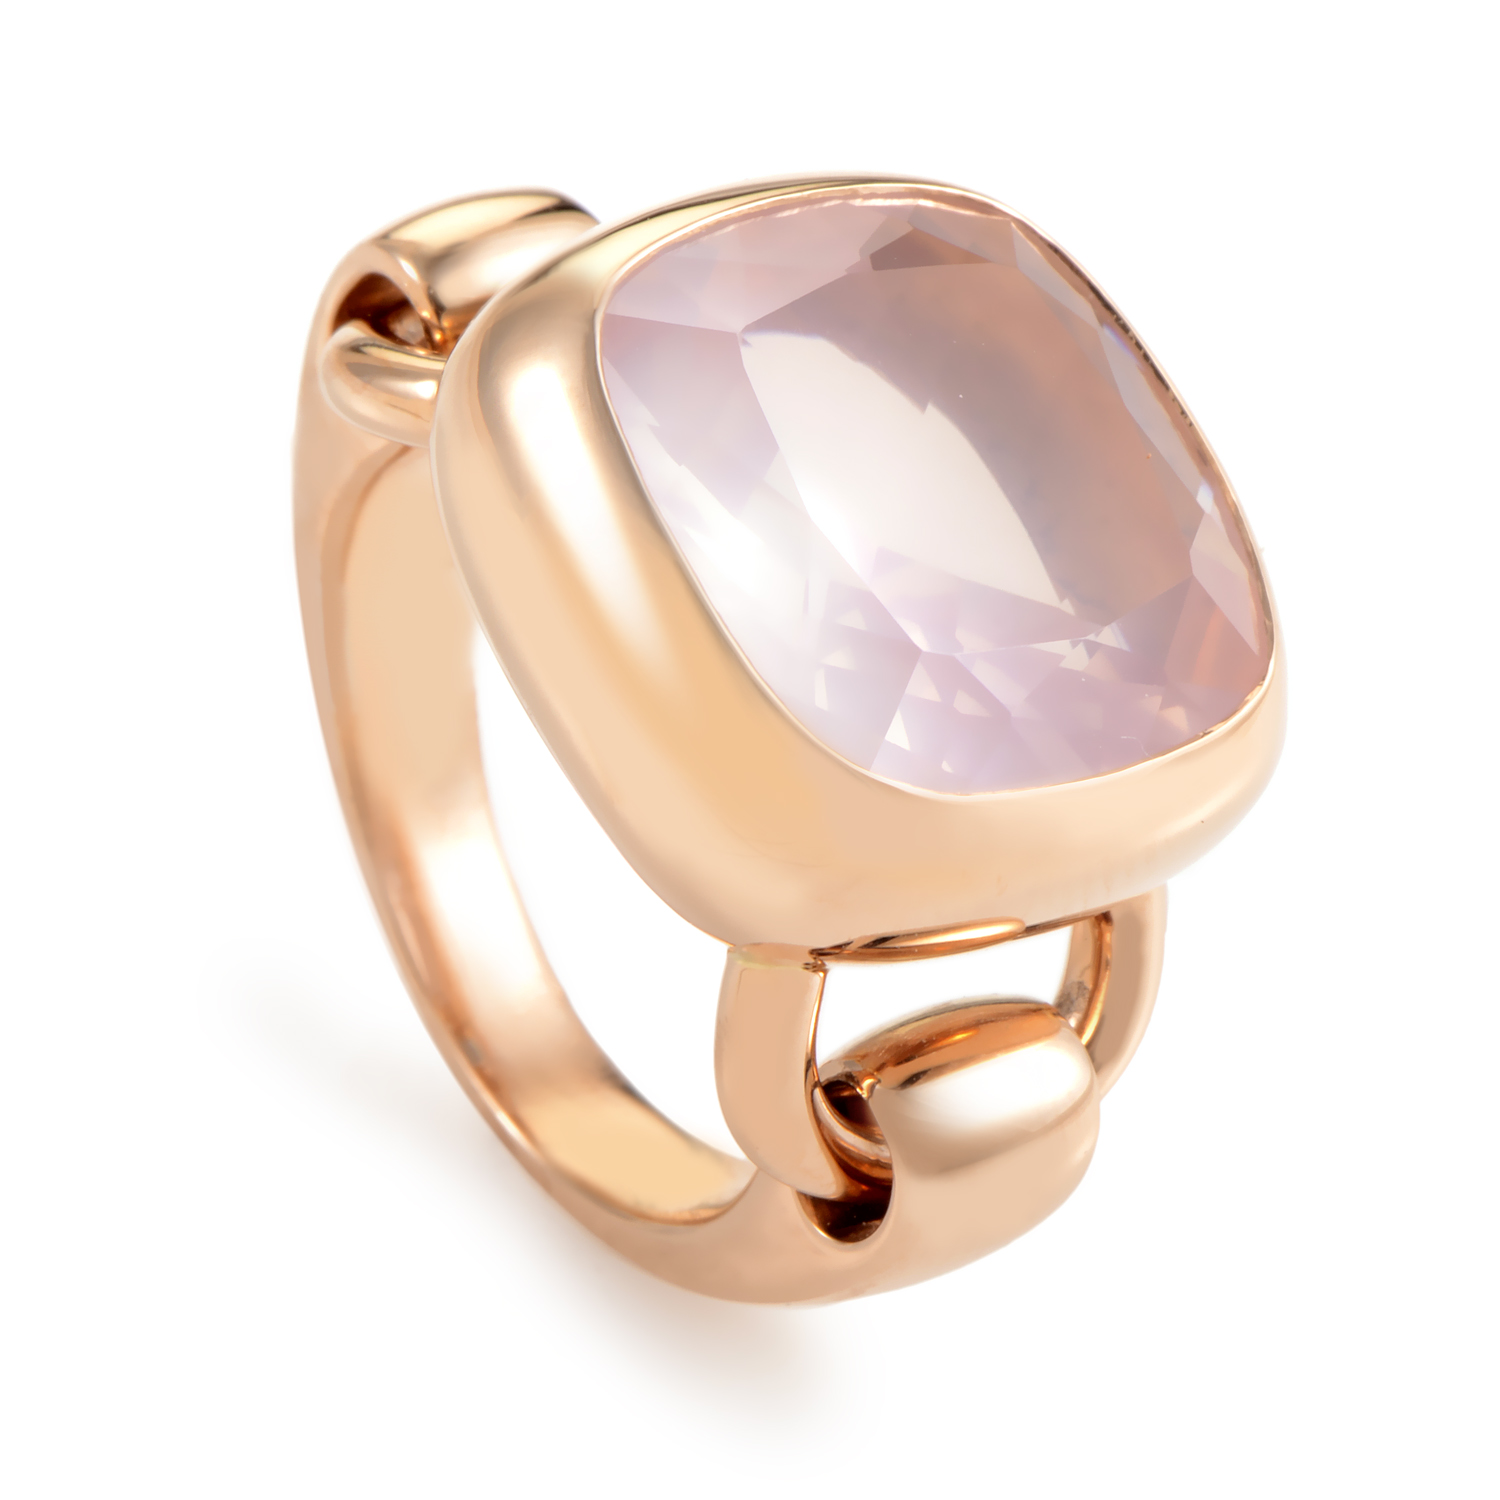 18K Rose Gold Pink Quartz Ring PPD3150